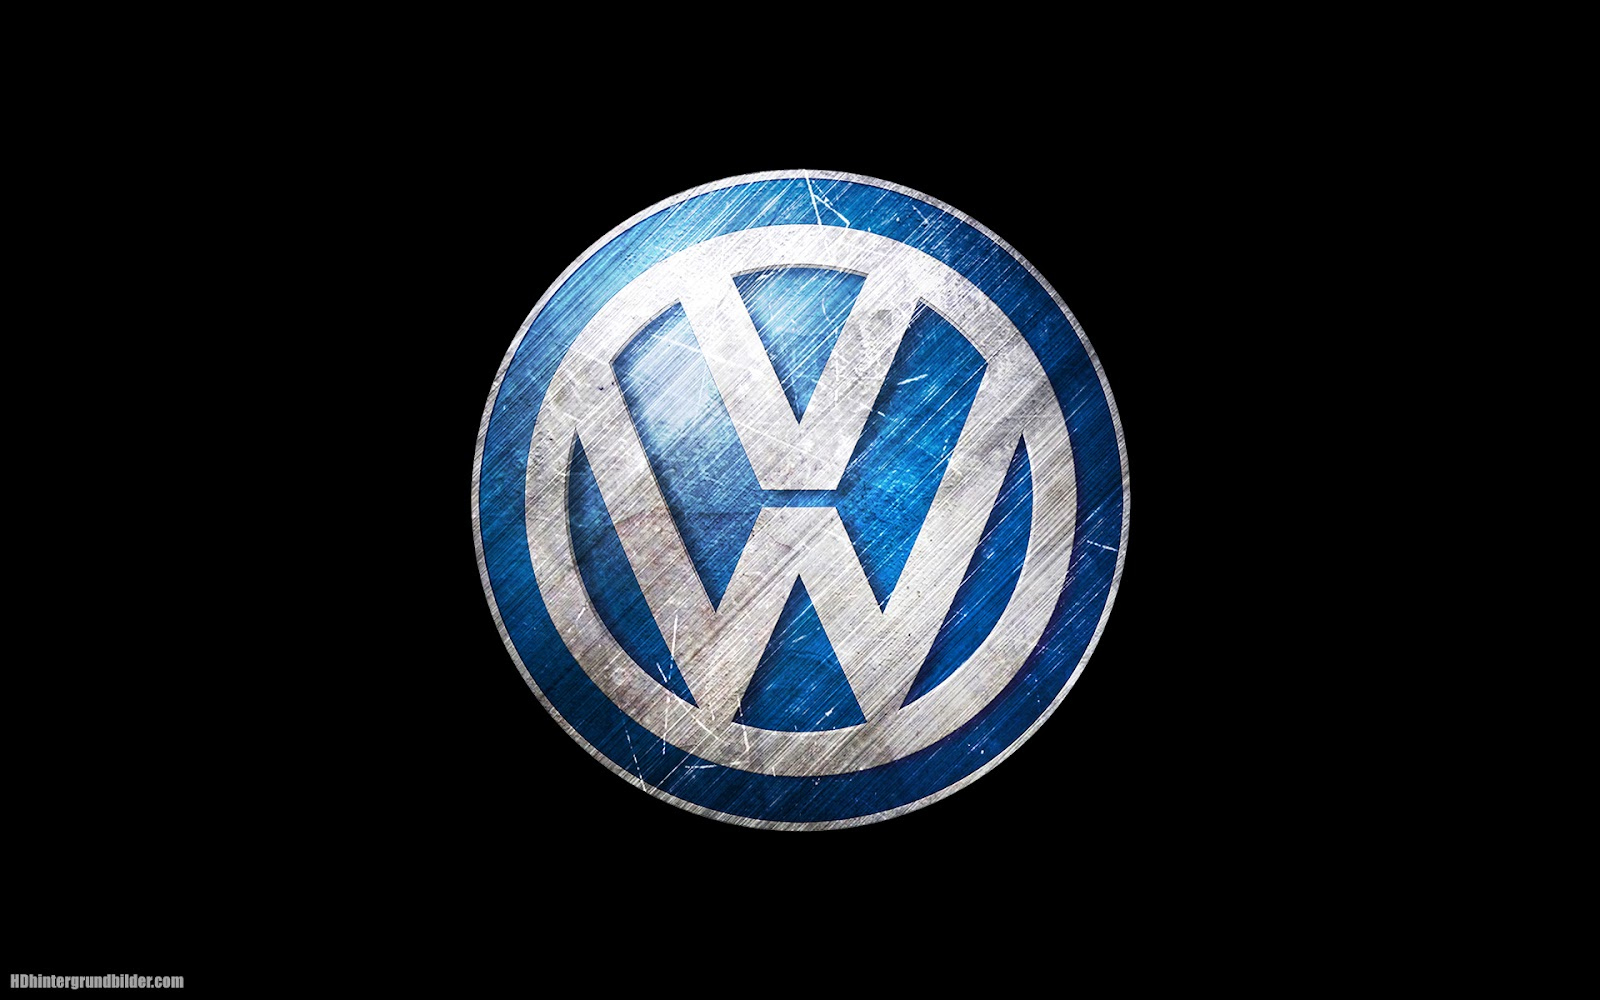 hd logo vw hintergrundbilder hd hintergrundbilder. Black Bedroom Furniture Sets. Home Design Ideas